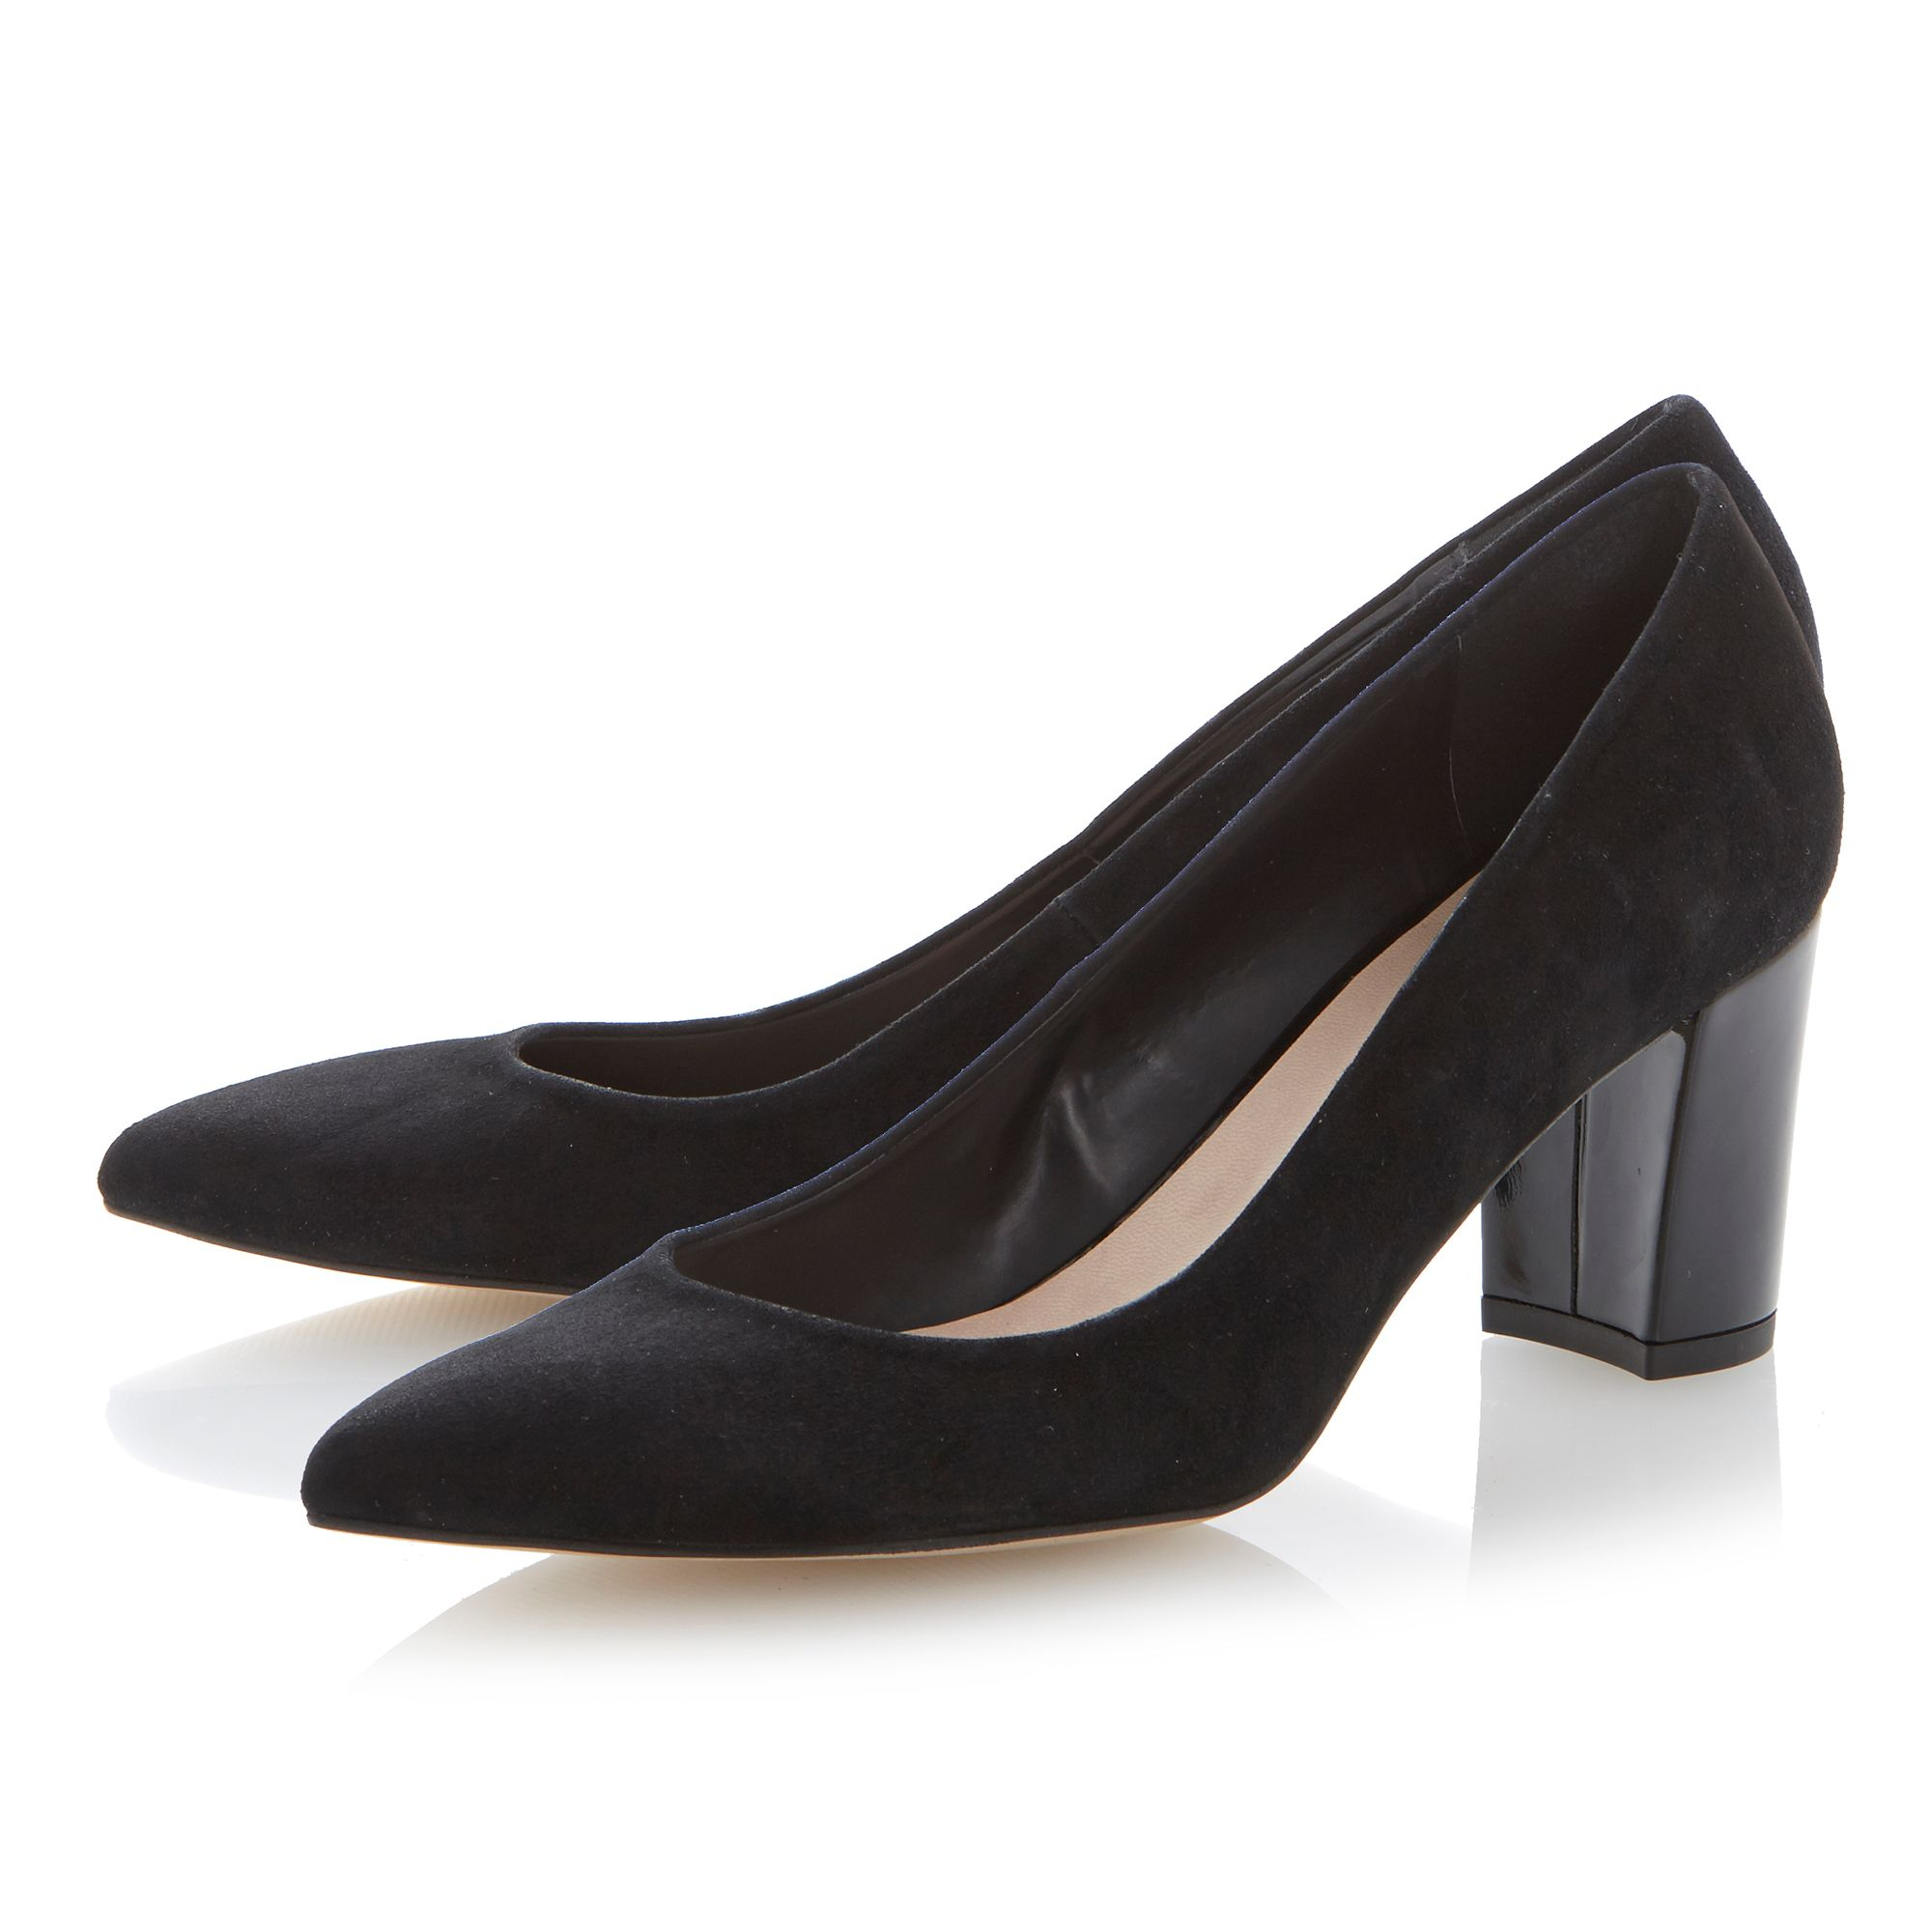 Dune Anika Pointed Toe Block Heel Court Shoes in Black | Lyst